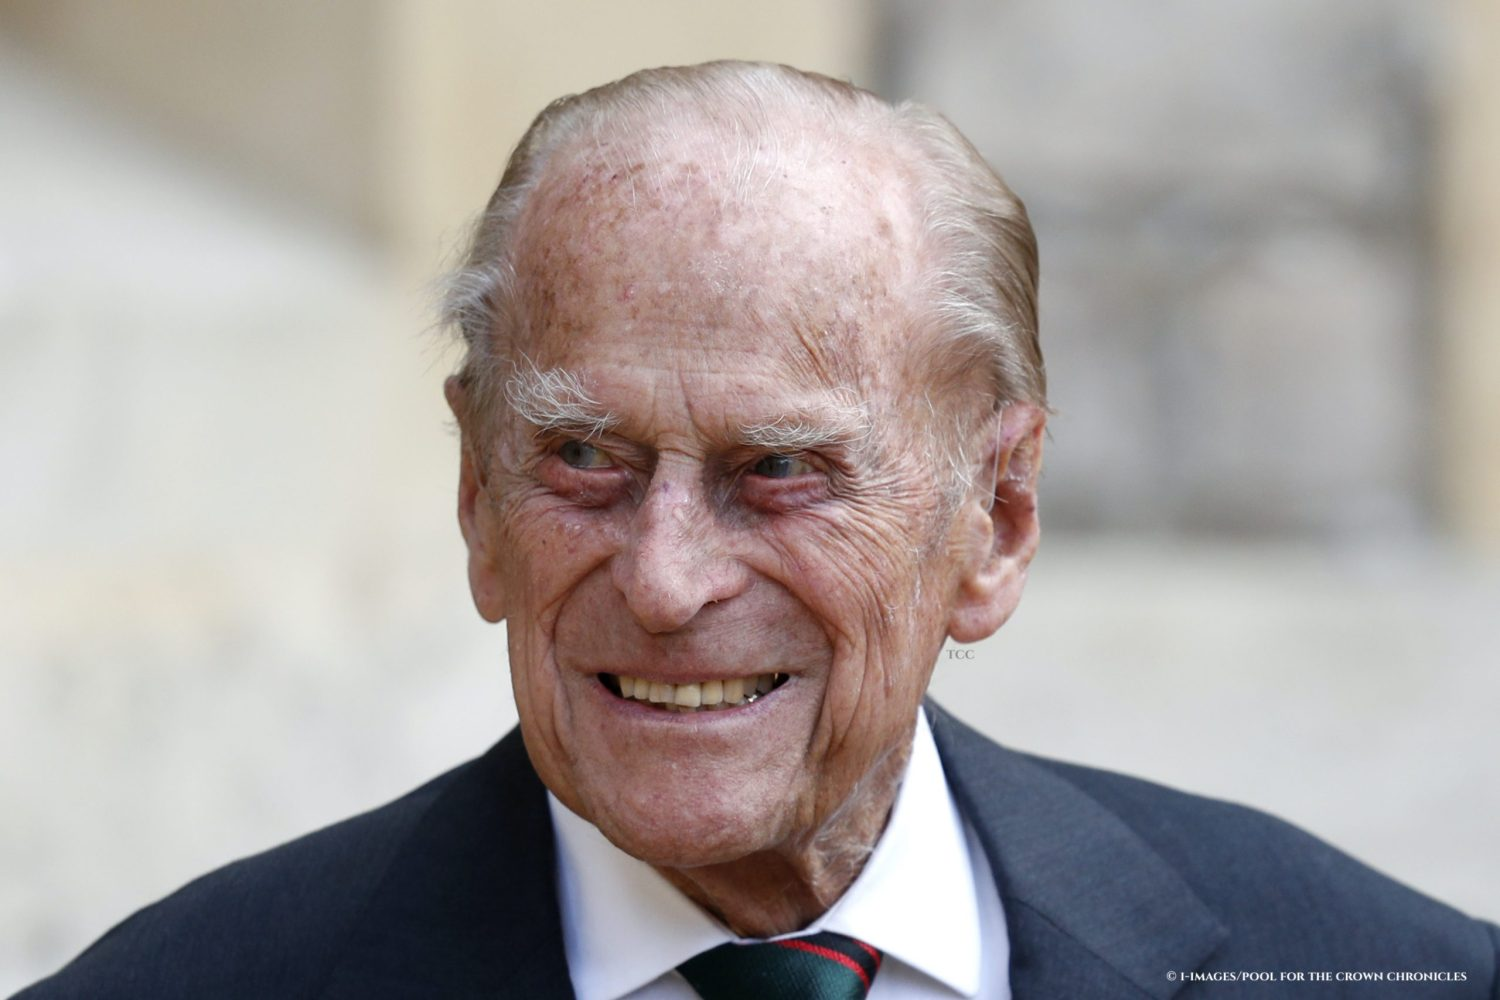 Prince Philip takes part in the transfer of the Colonel-in-Chief of The Rifles ceremony at Windsor Castle. Camilla, The Duchess of Cornwall will become the new Colonel-in-Chief. Picture by  i-Images / Pool